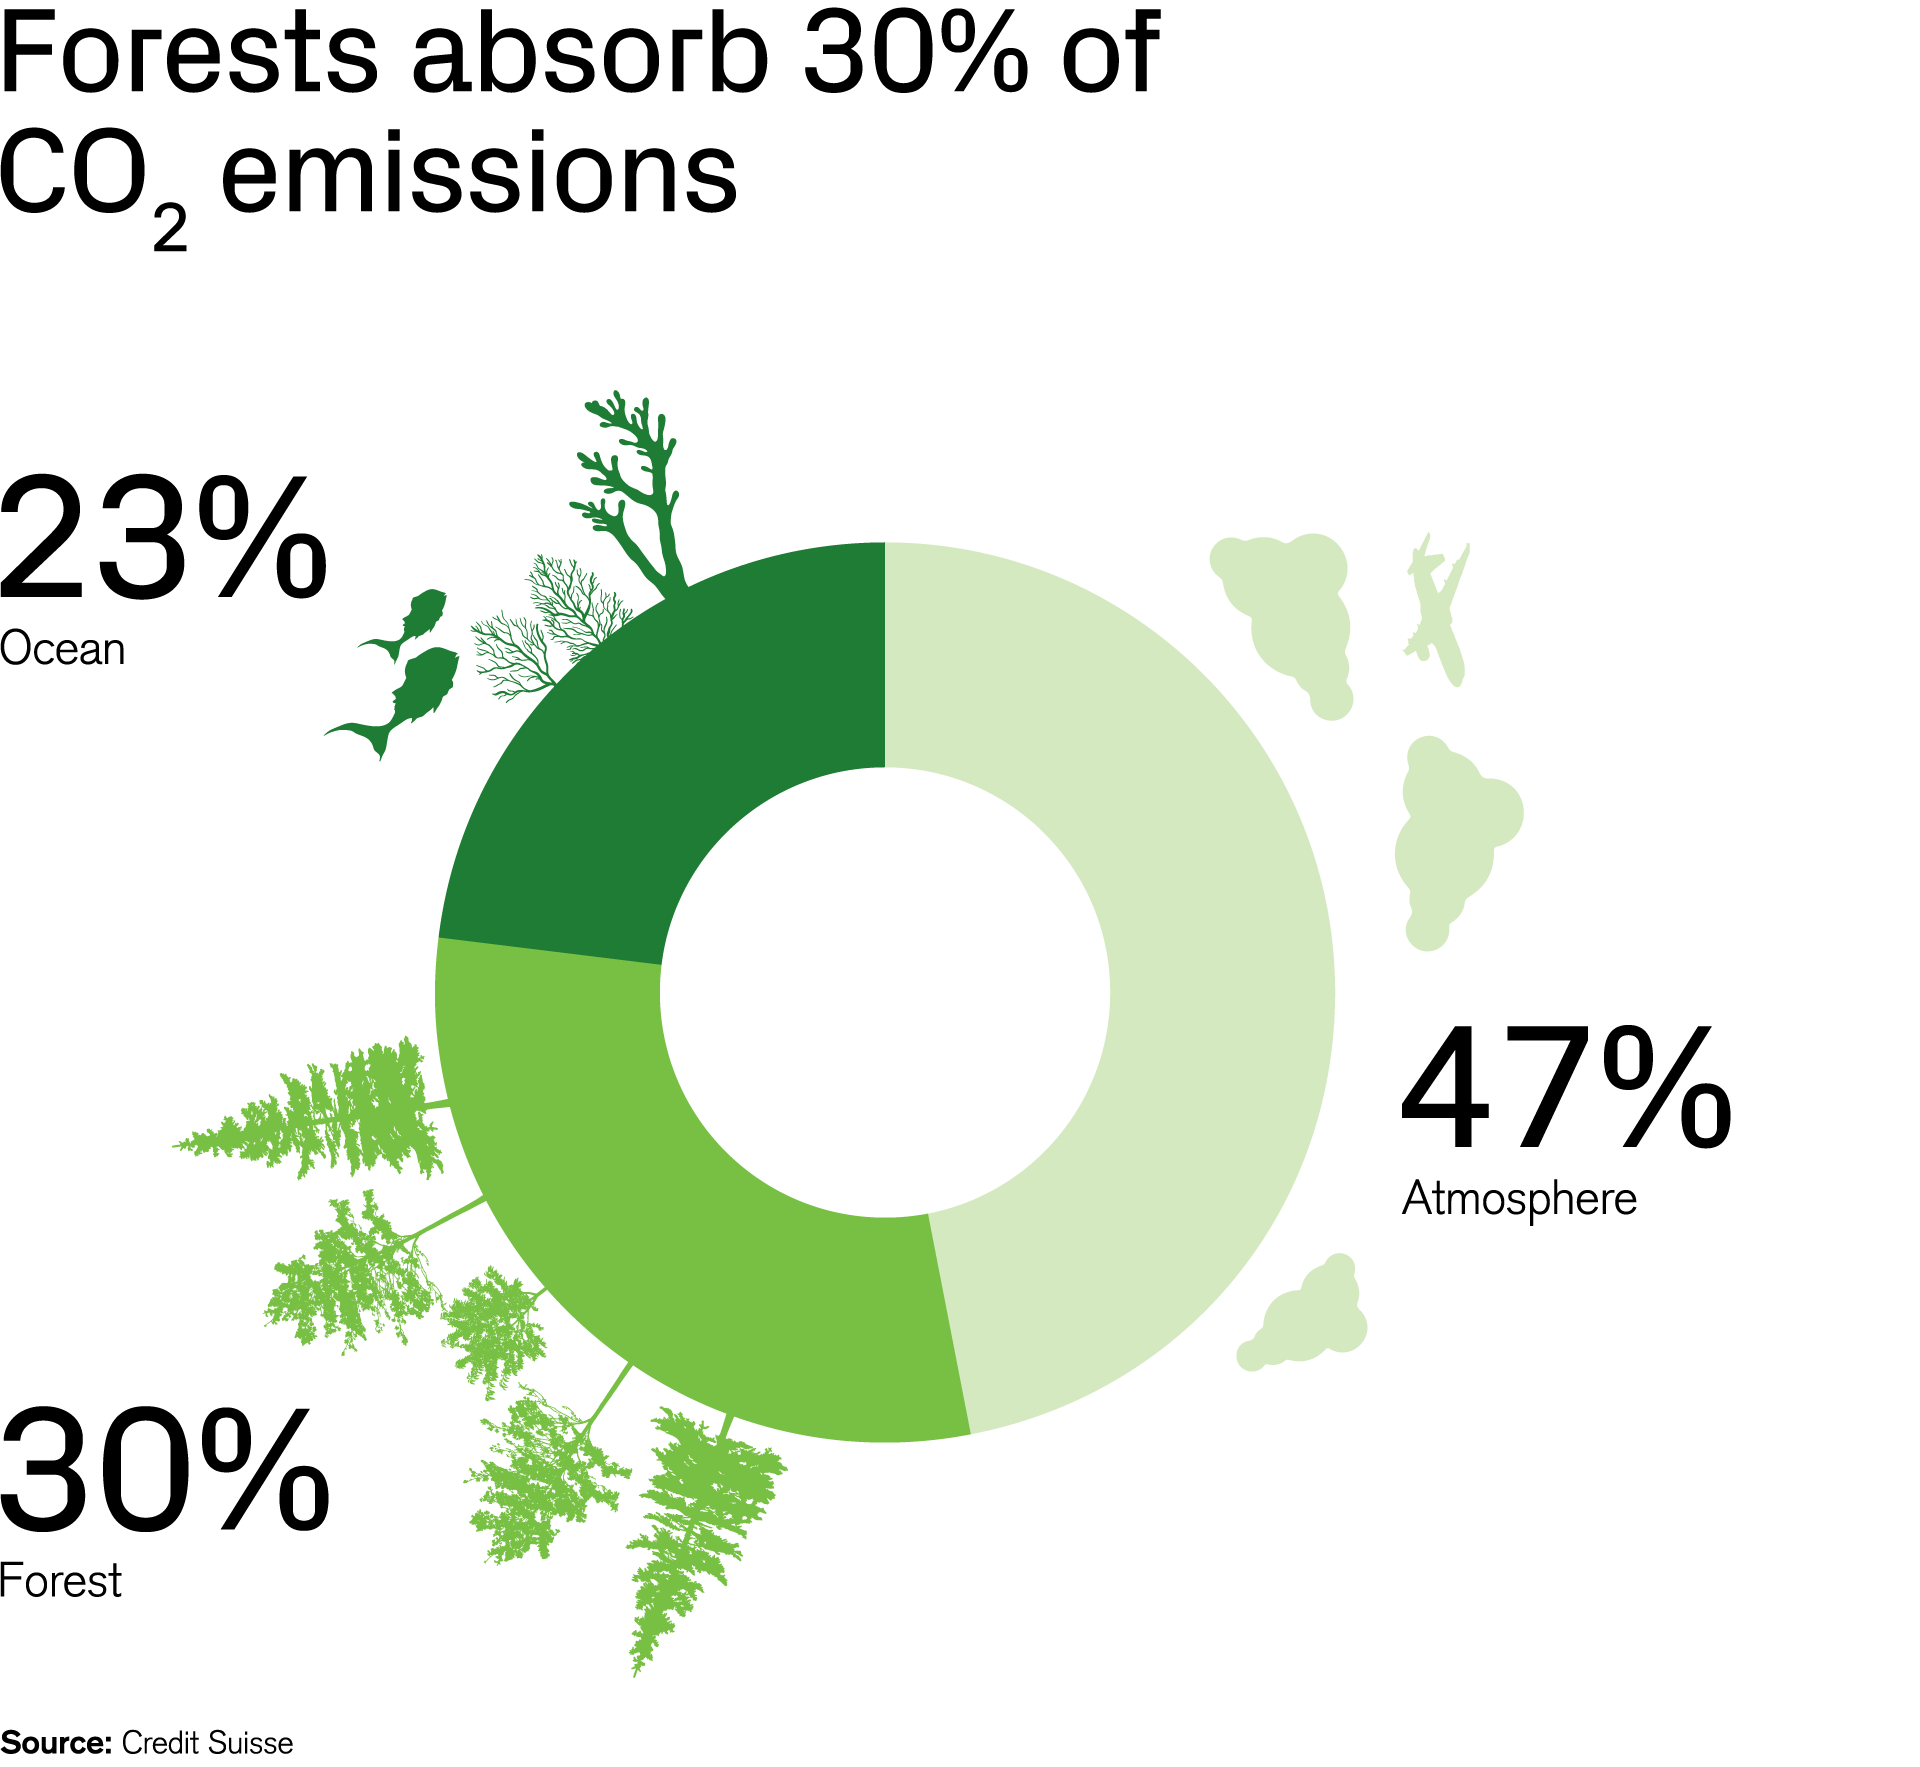 Forests absorb 30% of CO2 emissions